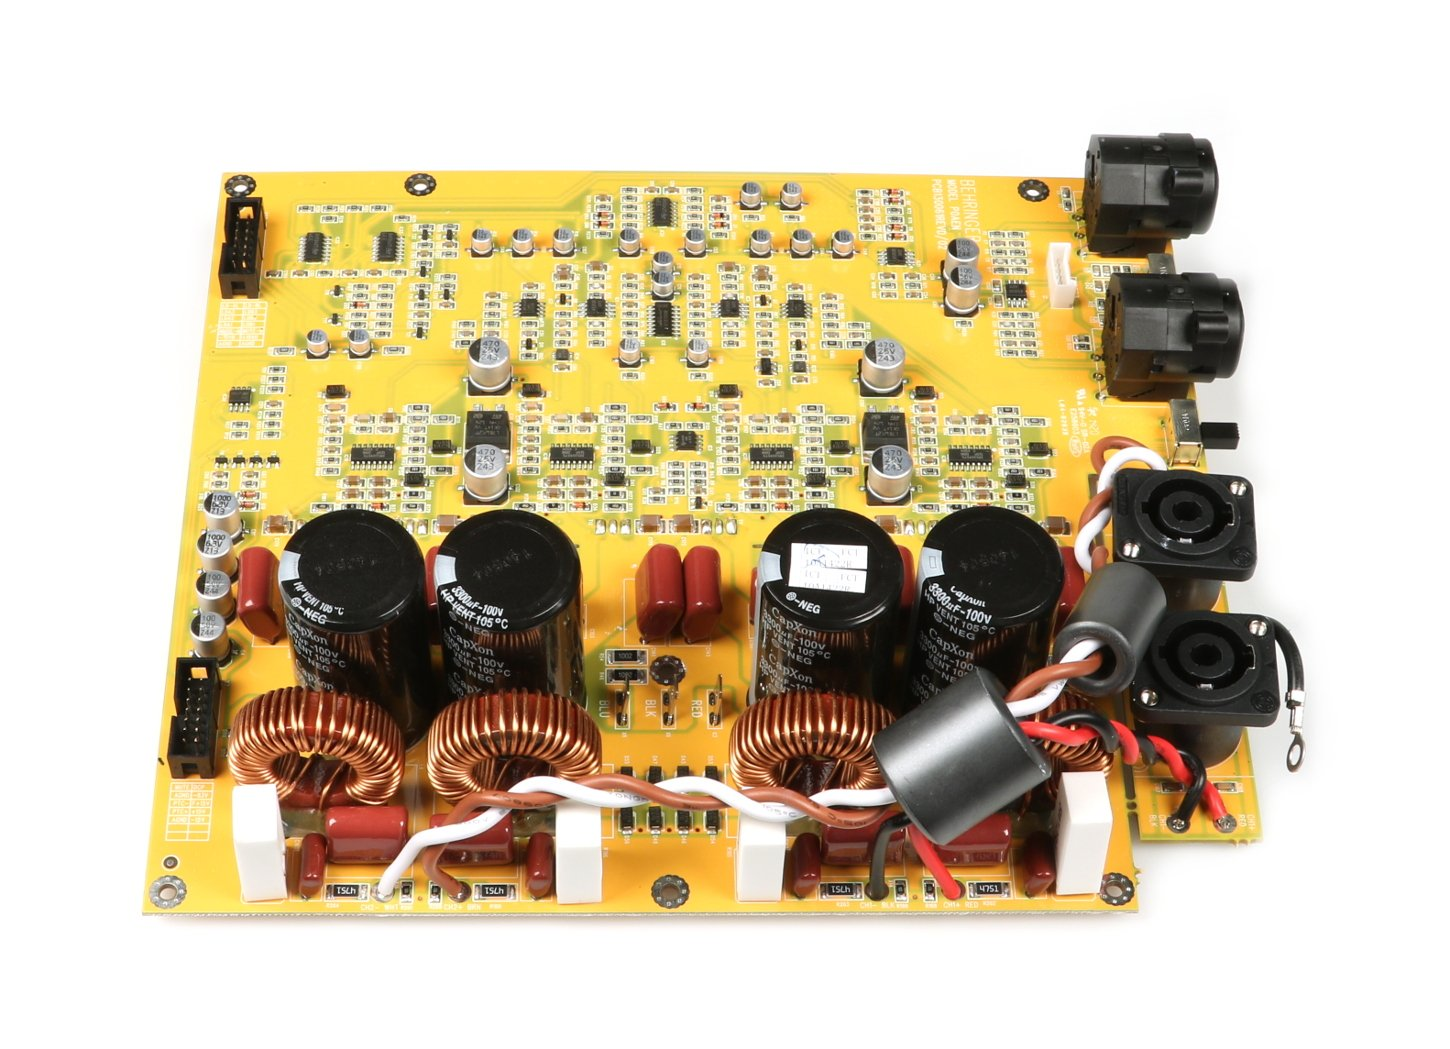 Amp PCB for NU6000